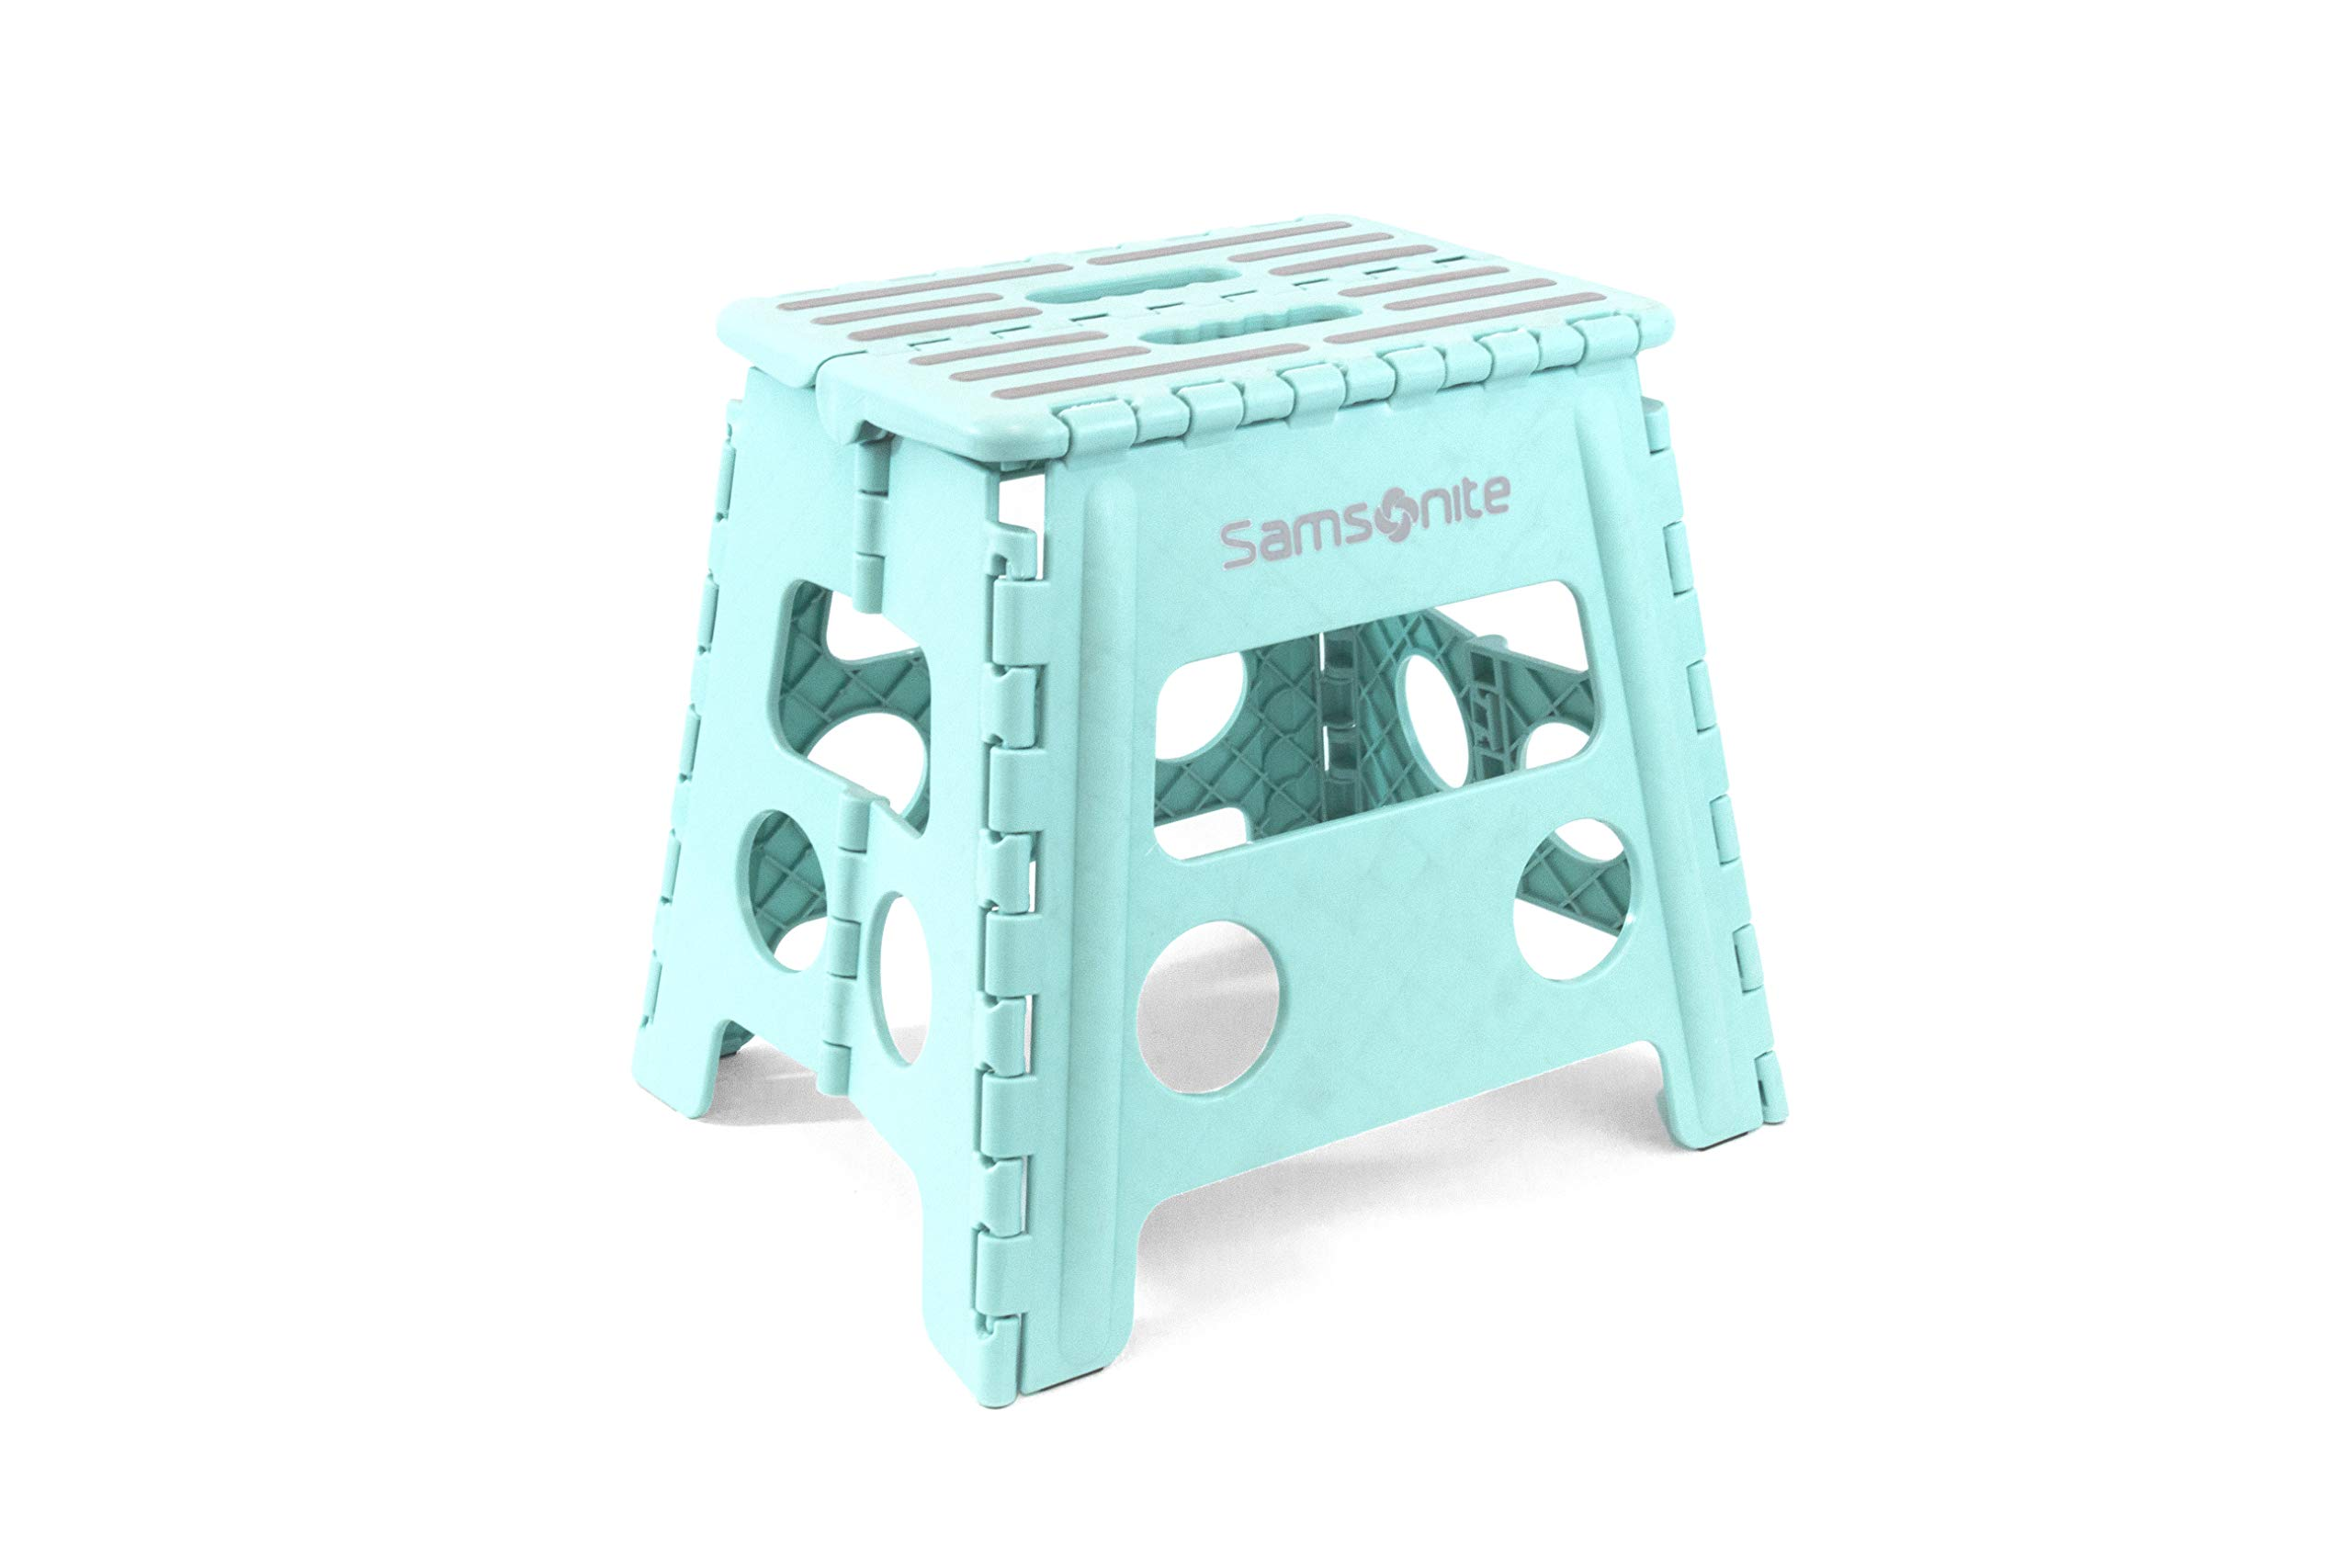 Samsonite Folding Step Stool in Aqua/Teal - 13'' High Double Handle - Heavy Duty - Holds up to 330 lbs